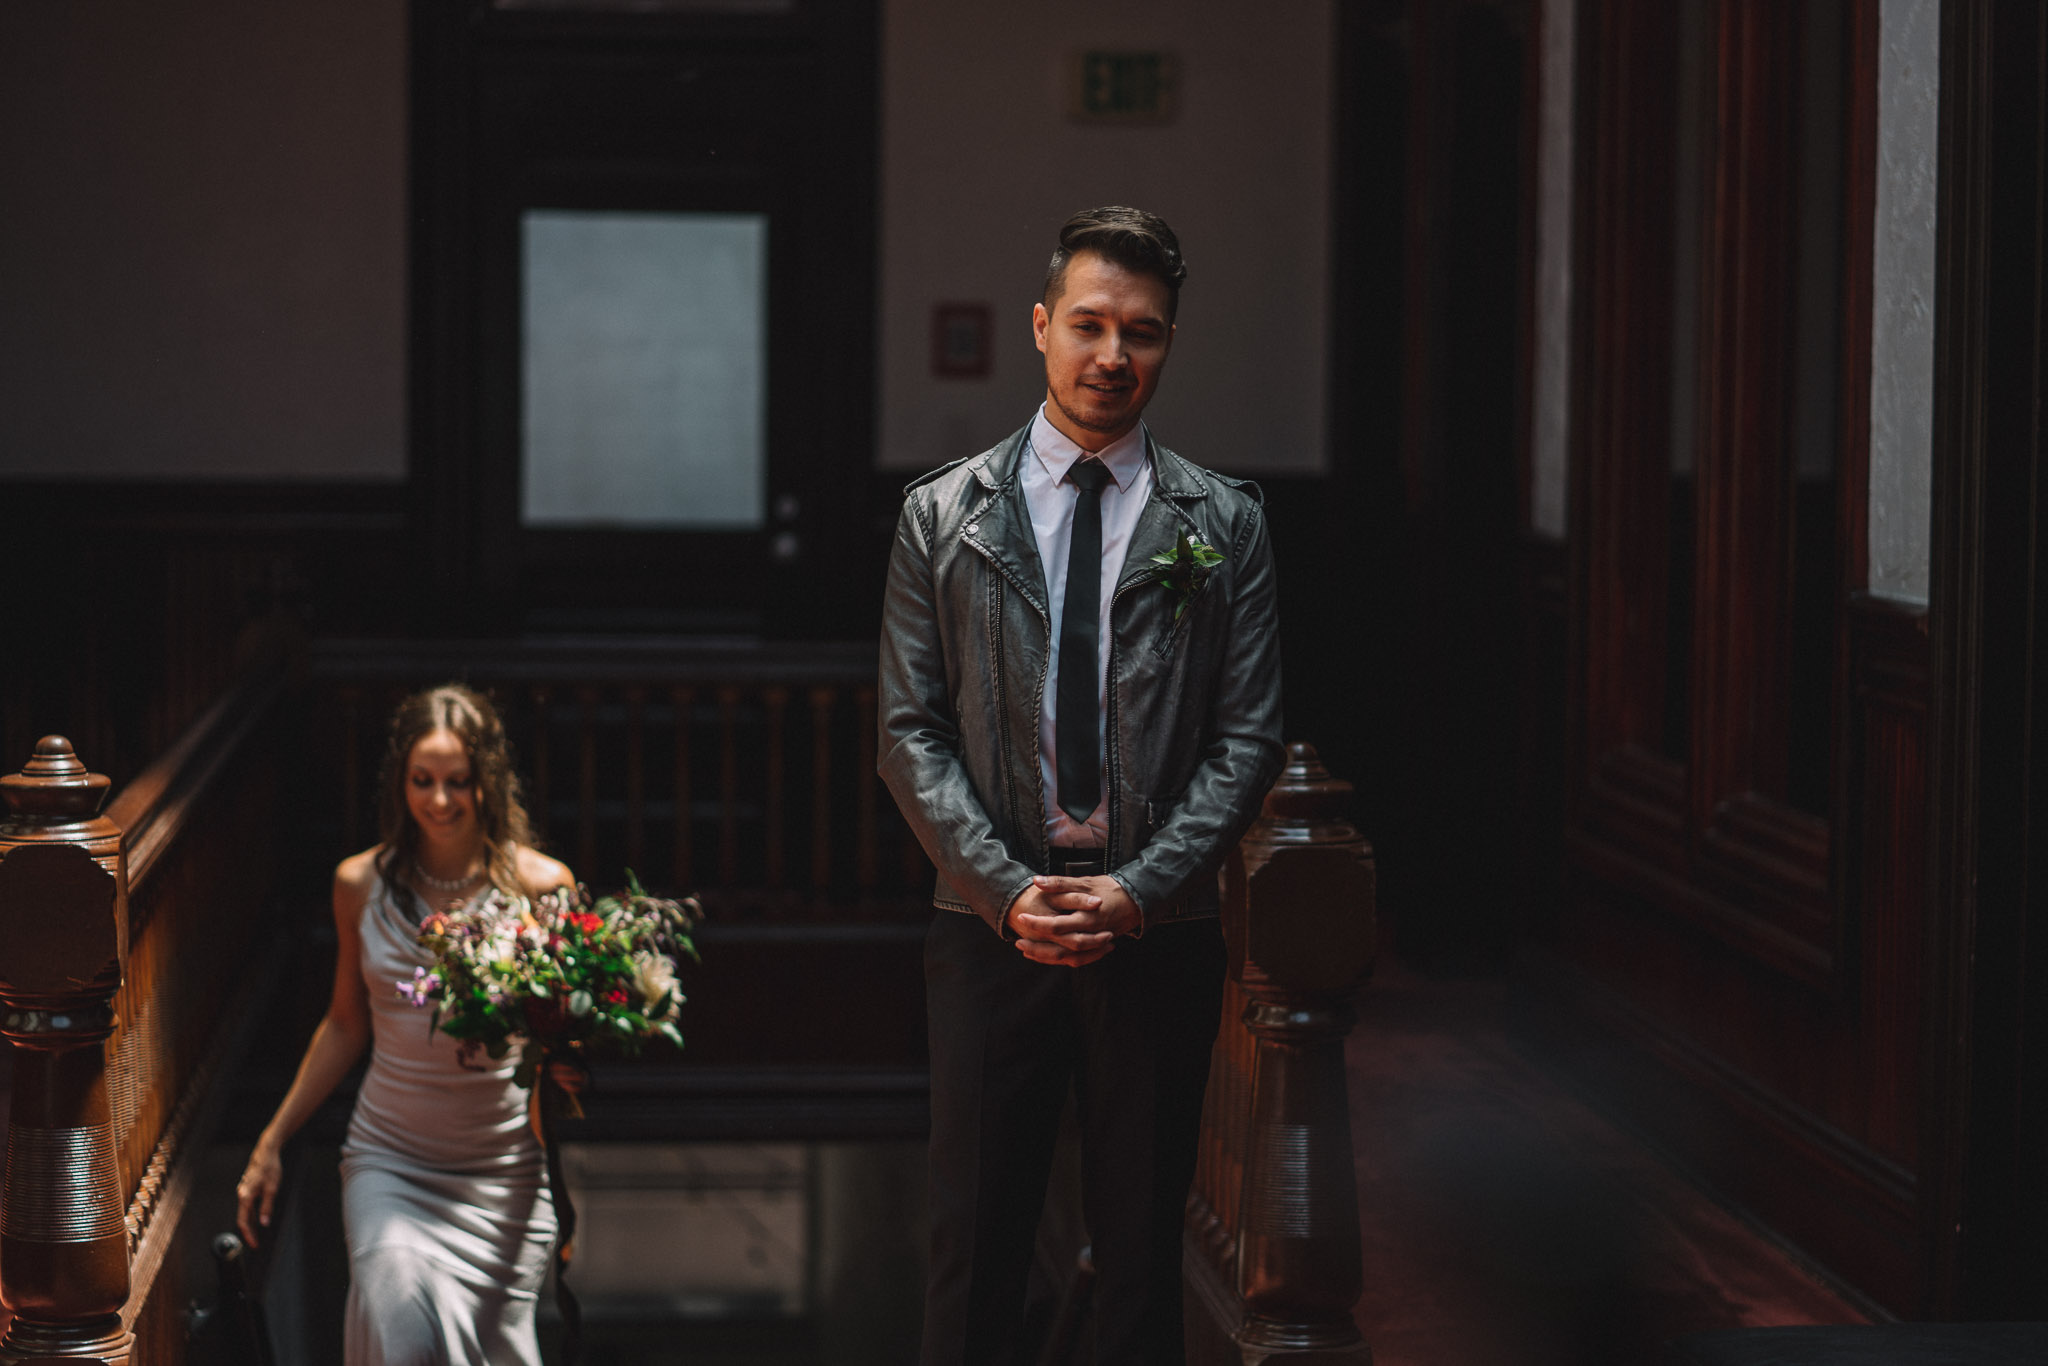 Moody Preset Wedding Edits